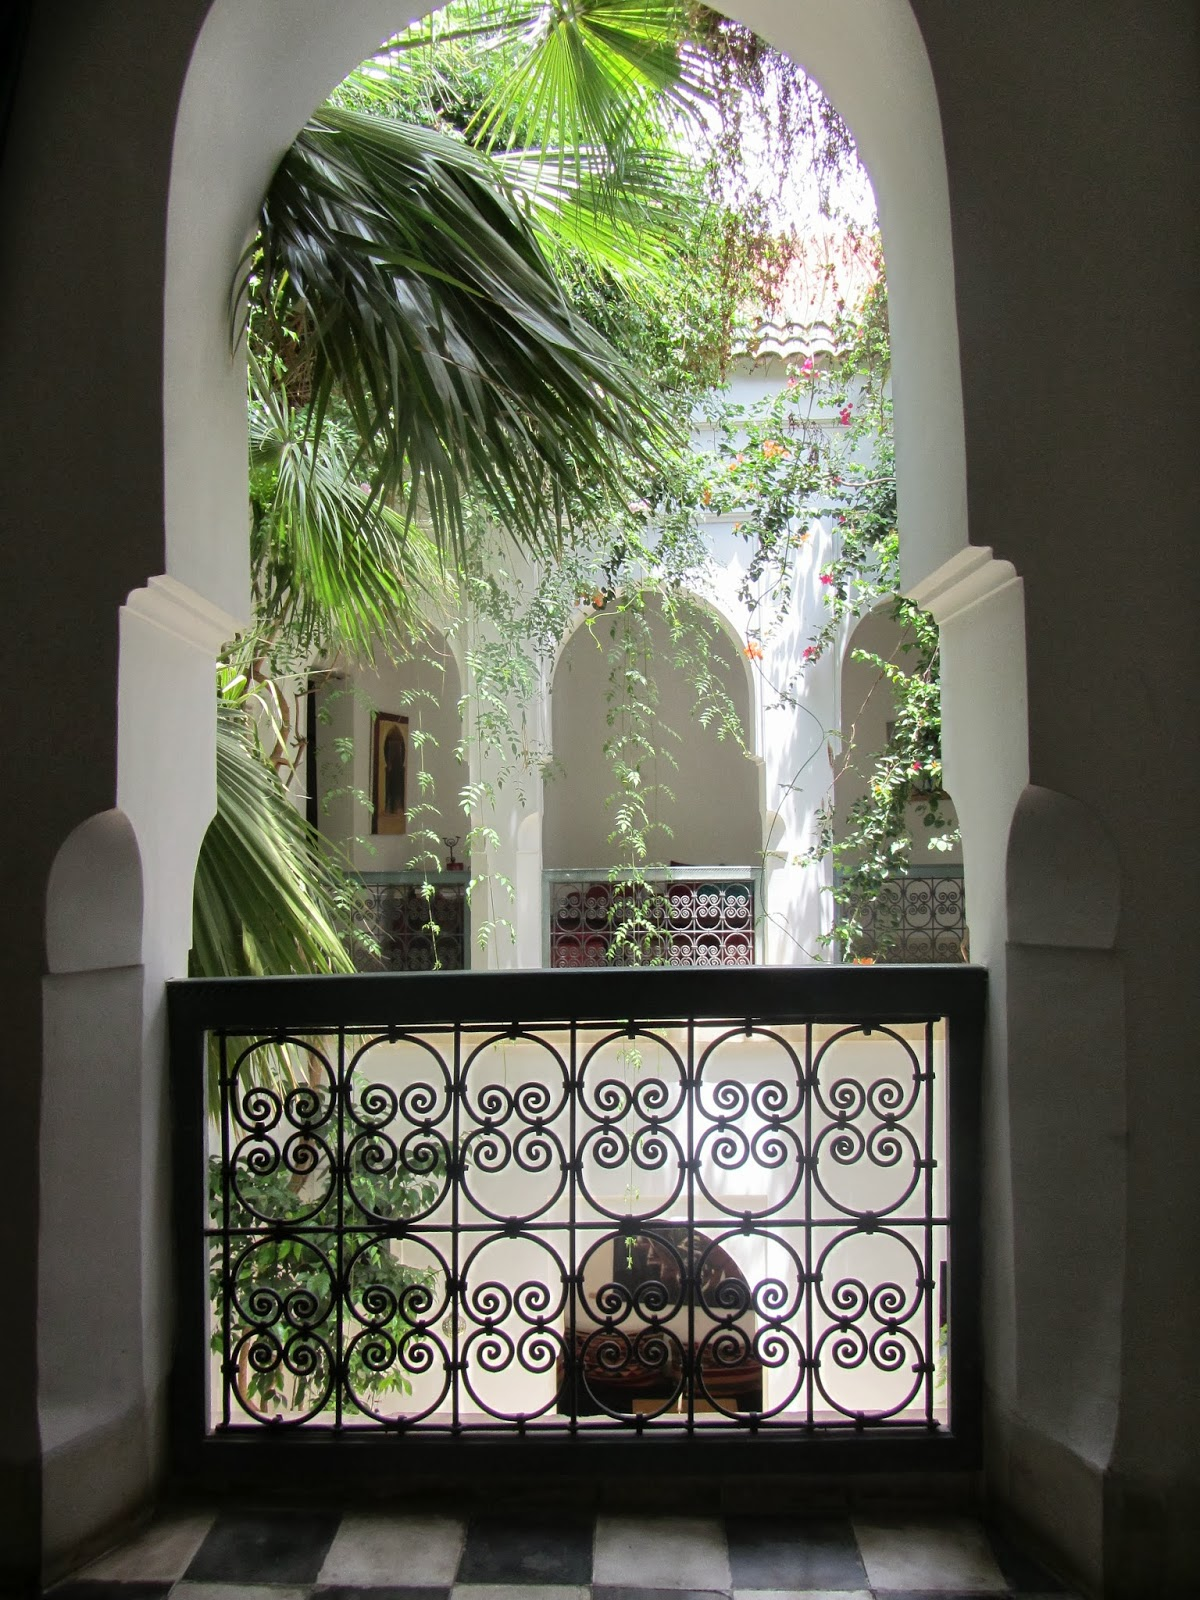 The Use Of Decorative Wrought Iron In Riads, Or Fer Forgé